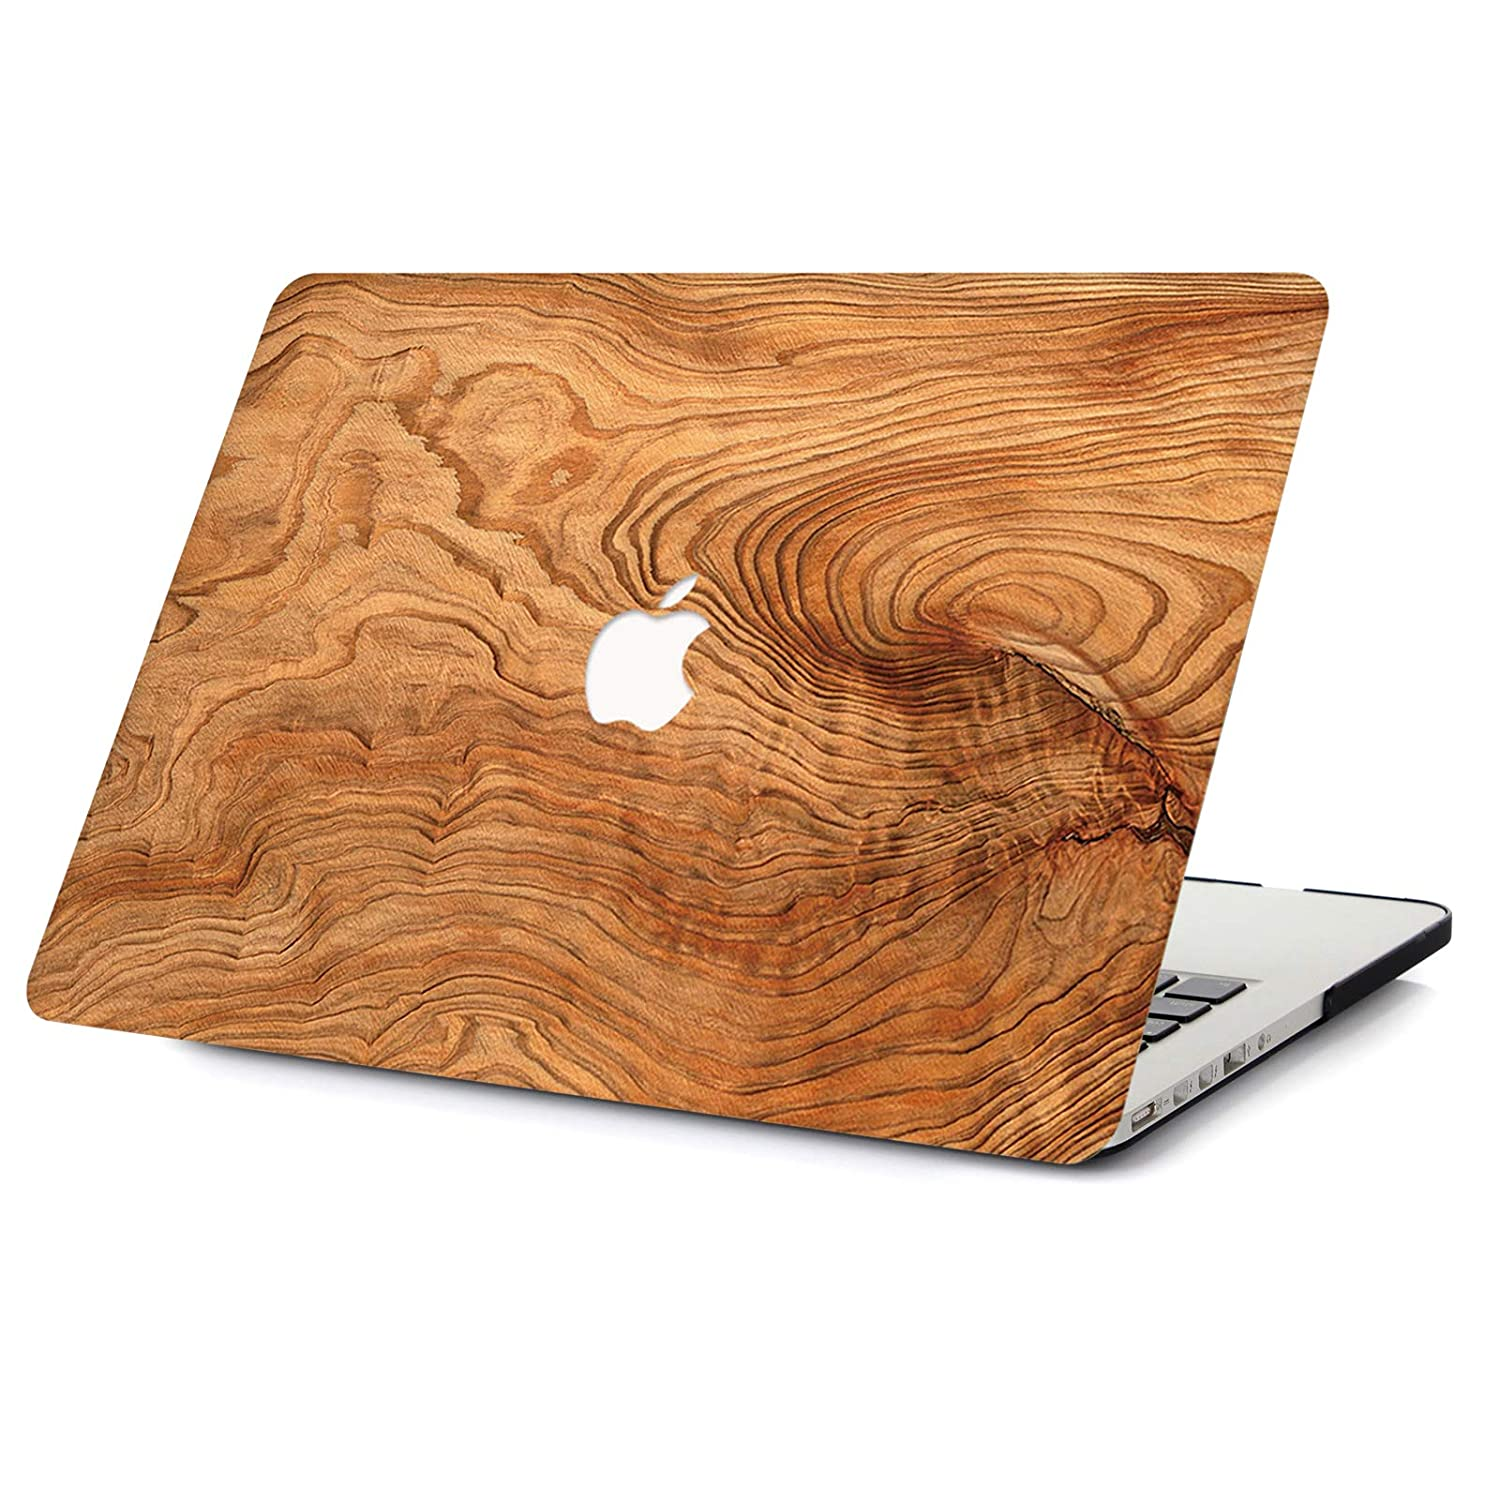 AOGGY Carcasa MacBook Pro 15 A1398, Ultra Delgado Funda ...